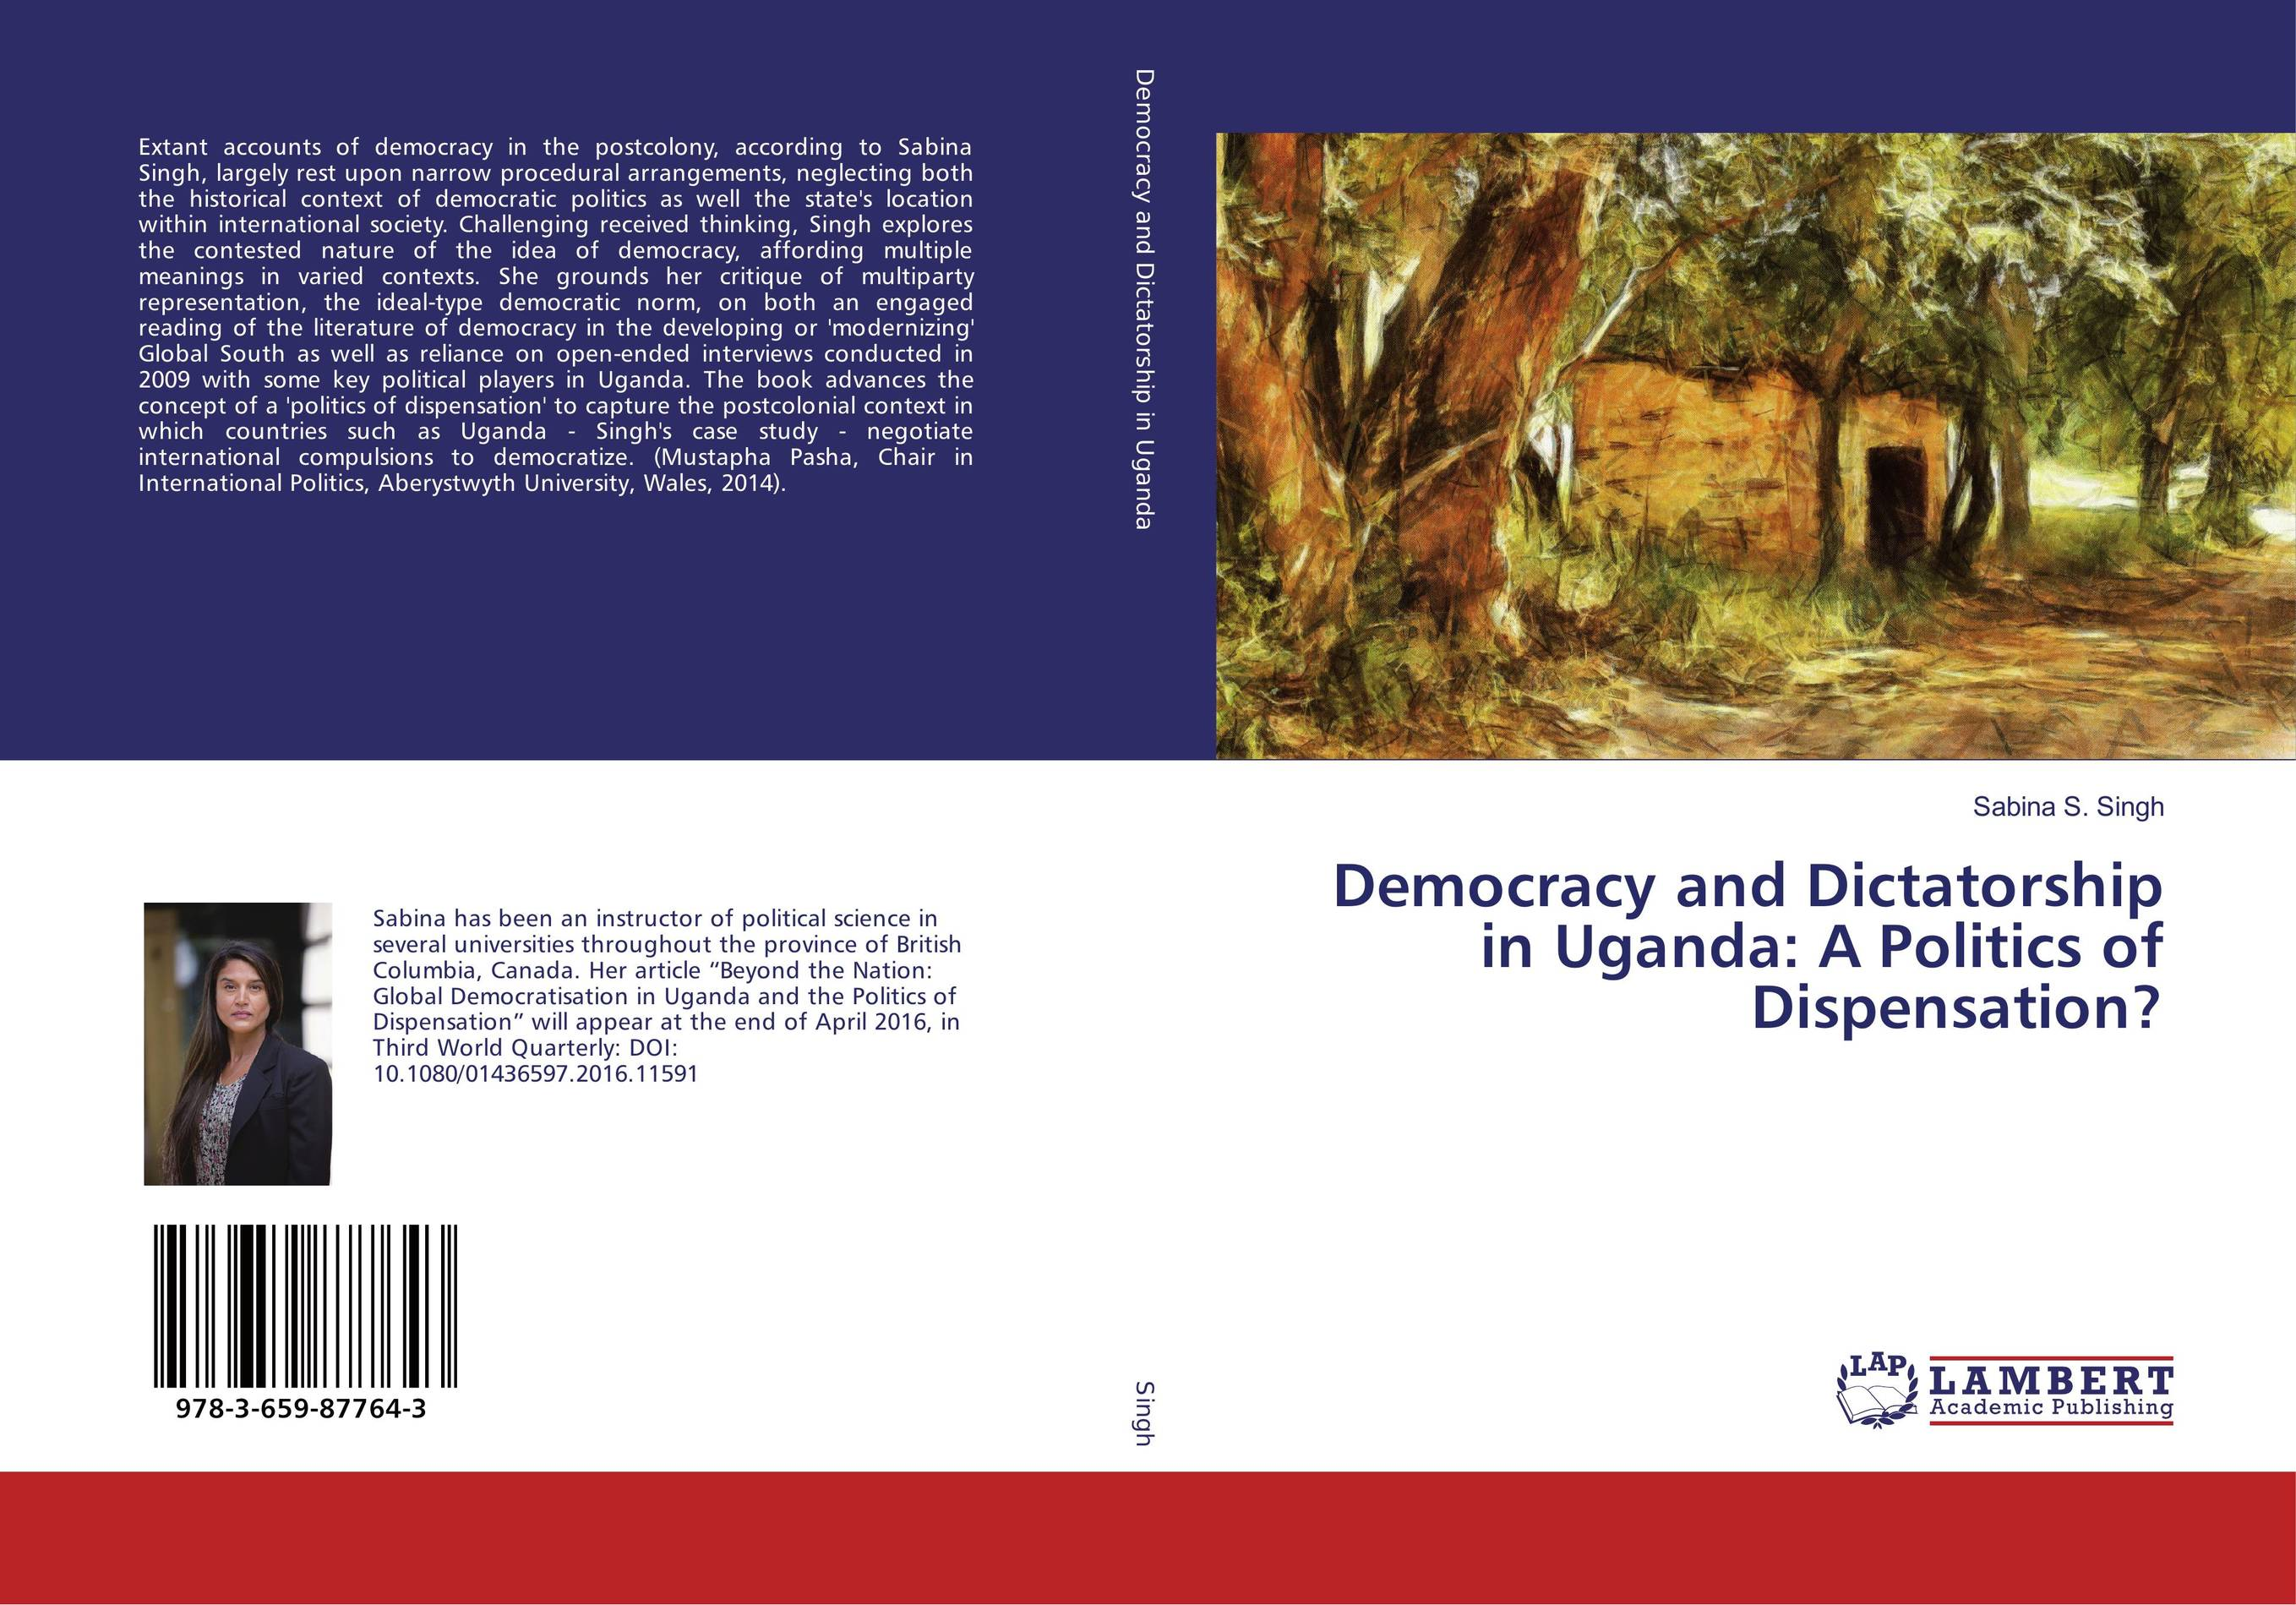 Democracy and Dictatorship in Uganda: A Politics of Dispensation? ripudaman singh arihant kaur bhalla and er gurkamal singh adolescents of intact families and orphanages